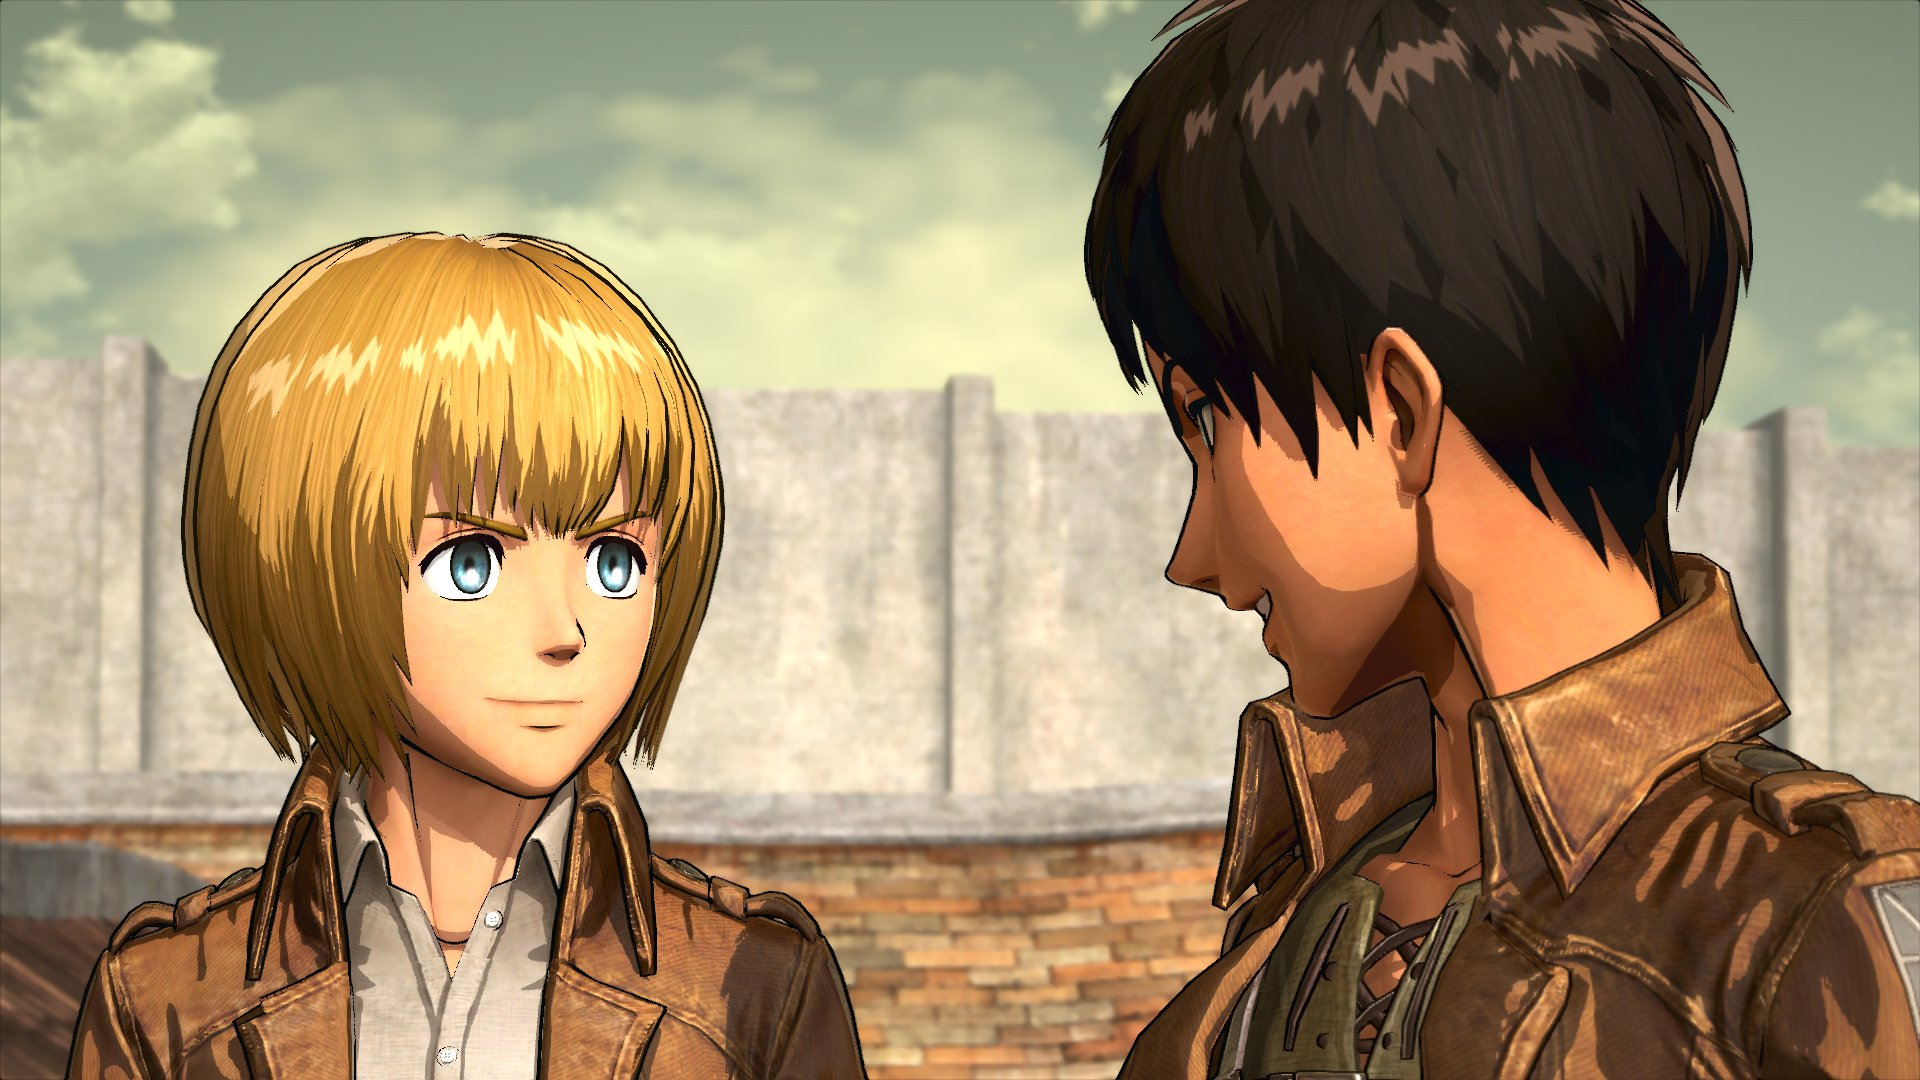 Attack on Titan Launches This Fall For PC, PS4 & Xbox One 6